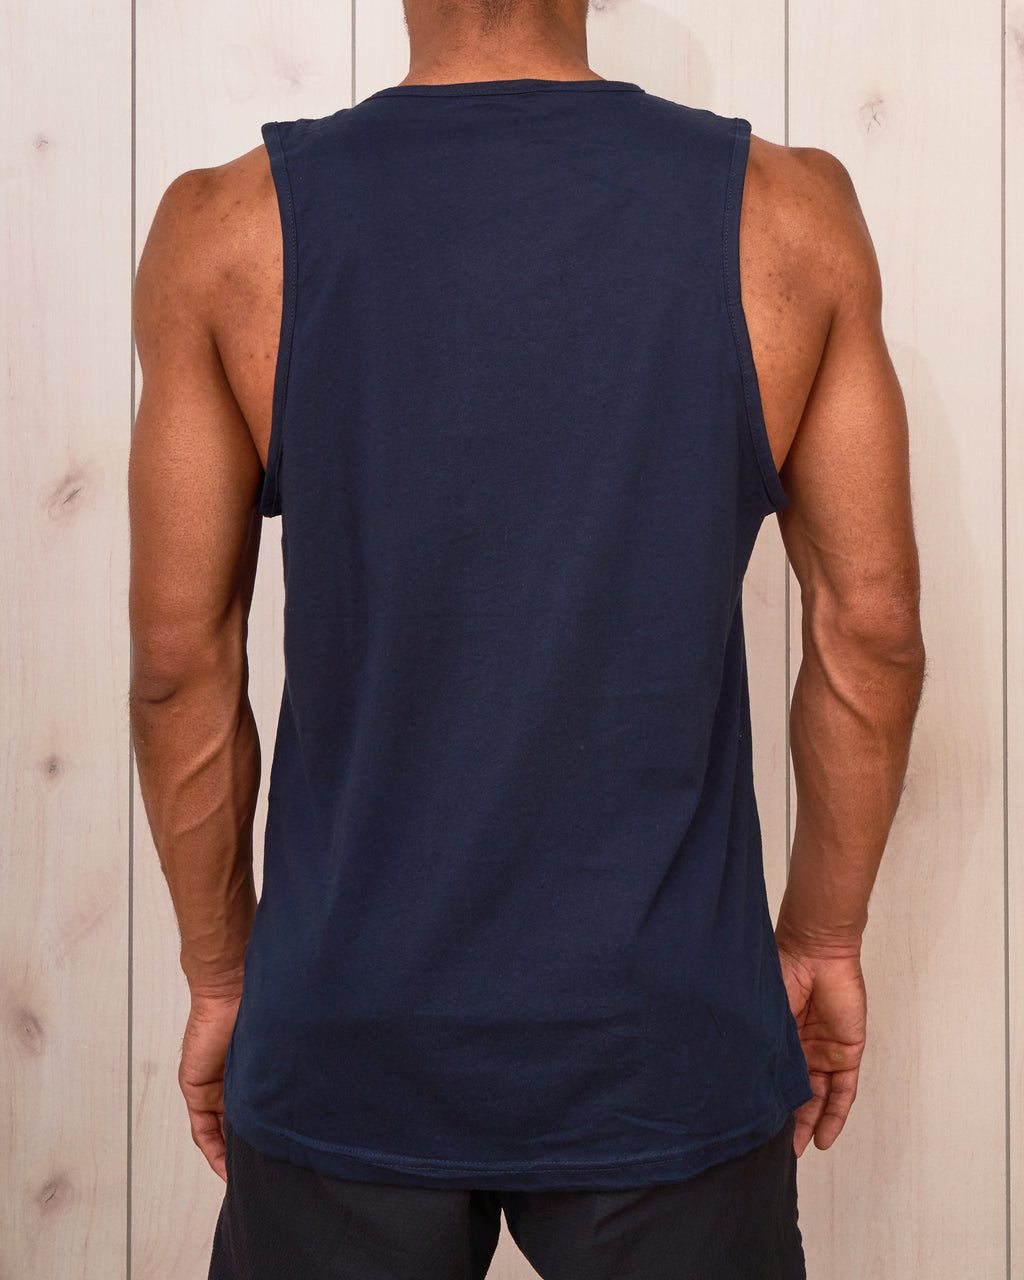 Men's 7 Mile Club Cotton Tank